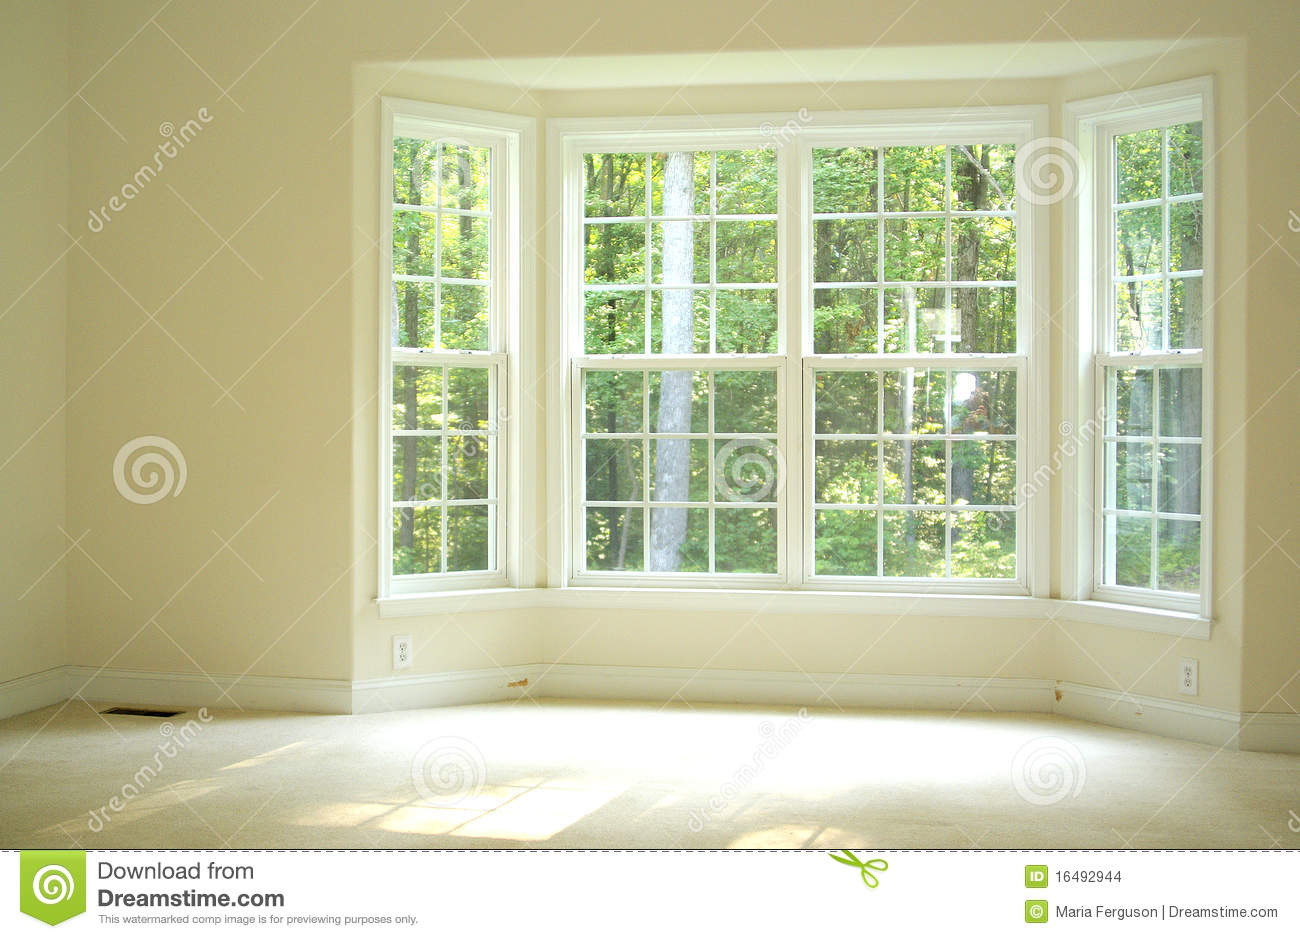 Open And Bright Room With Bay Window Stock Images - Image ...